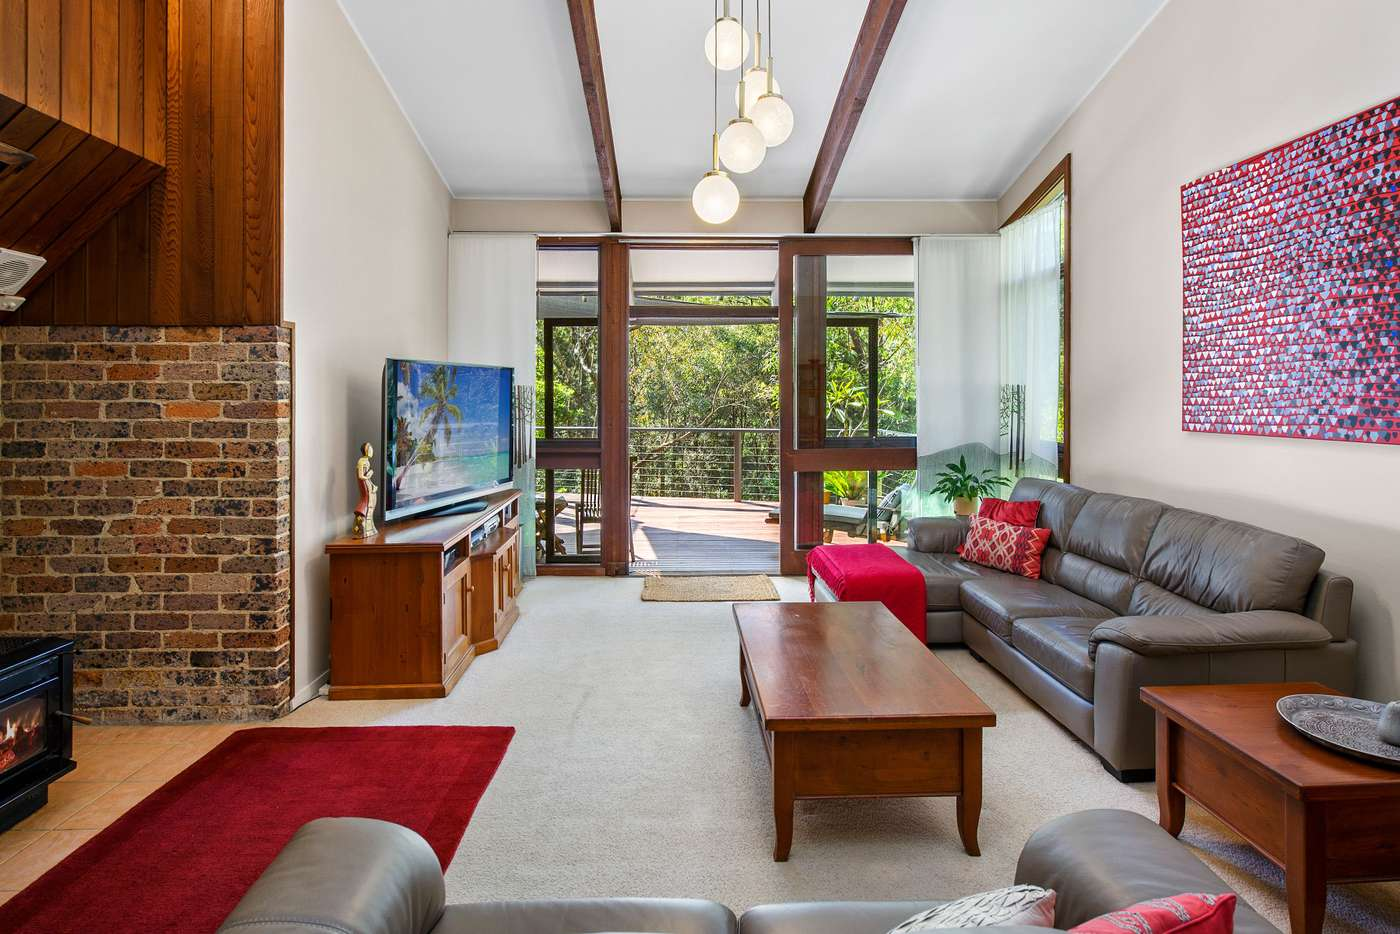 Main view of Homely house listing, 83 Wareemba Avenue, Thornleigh NSW 2120